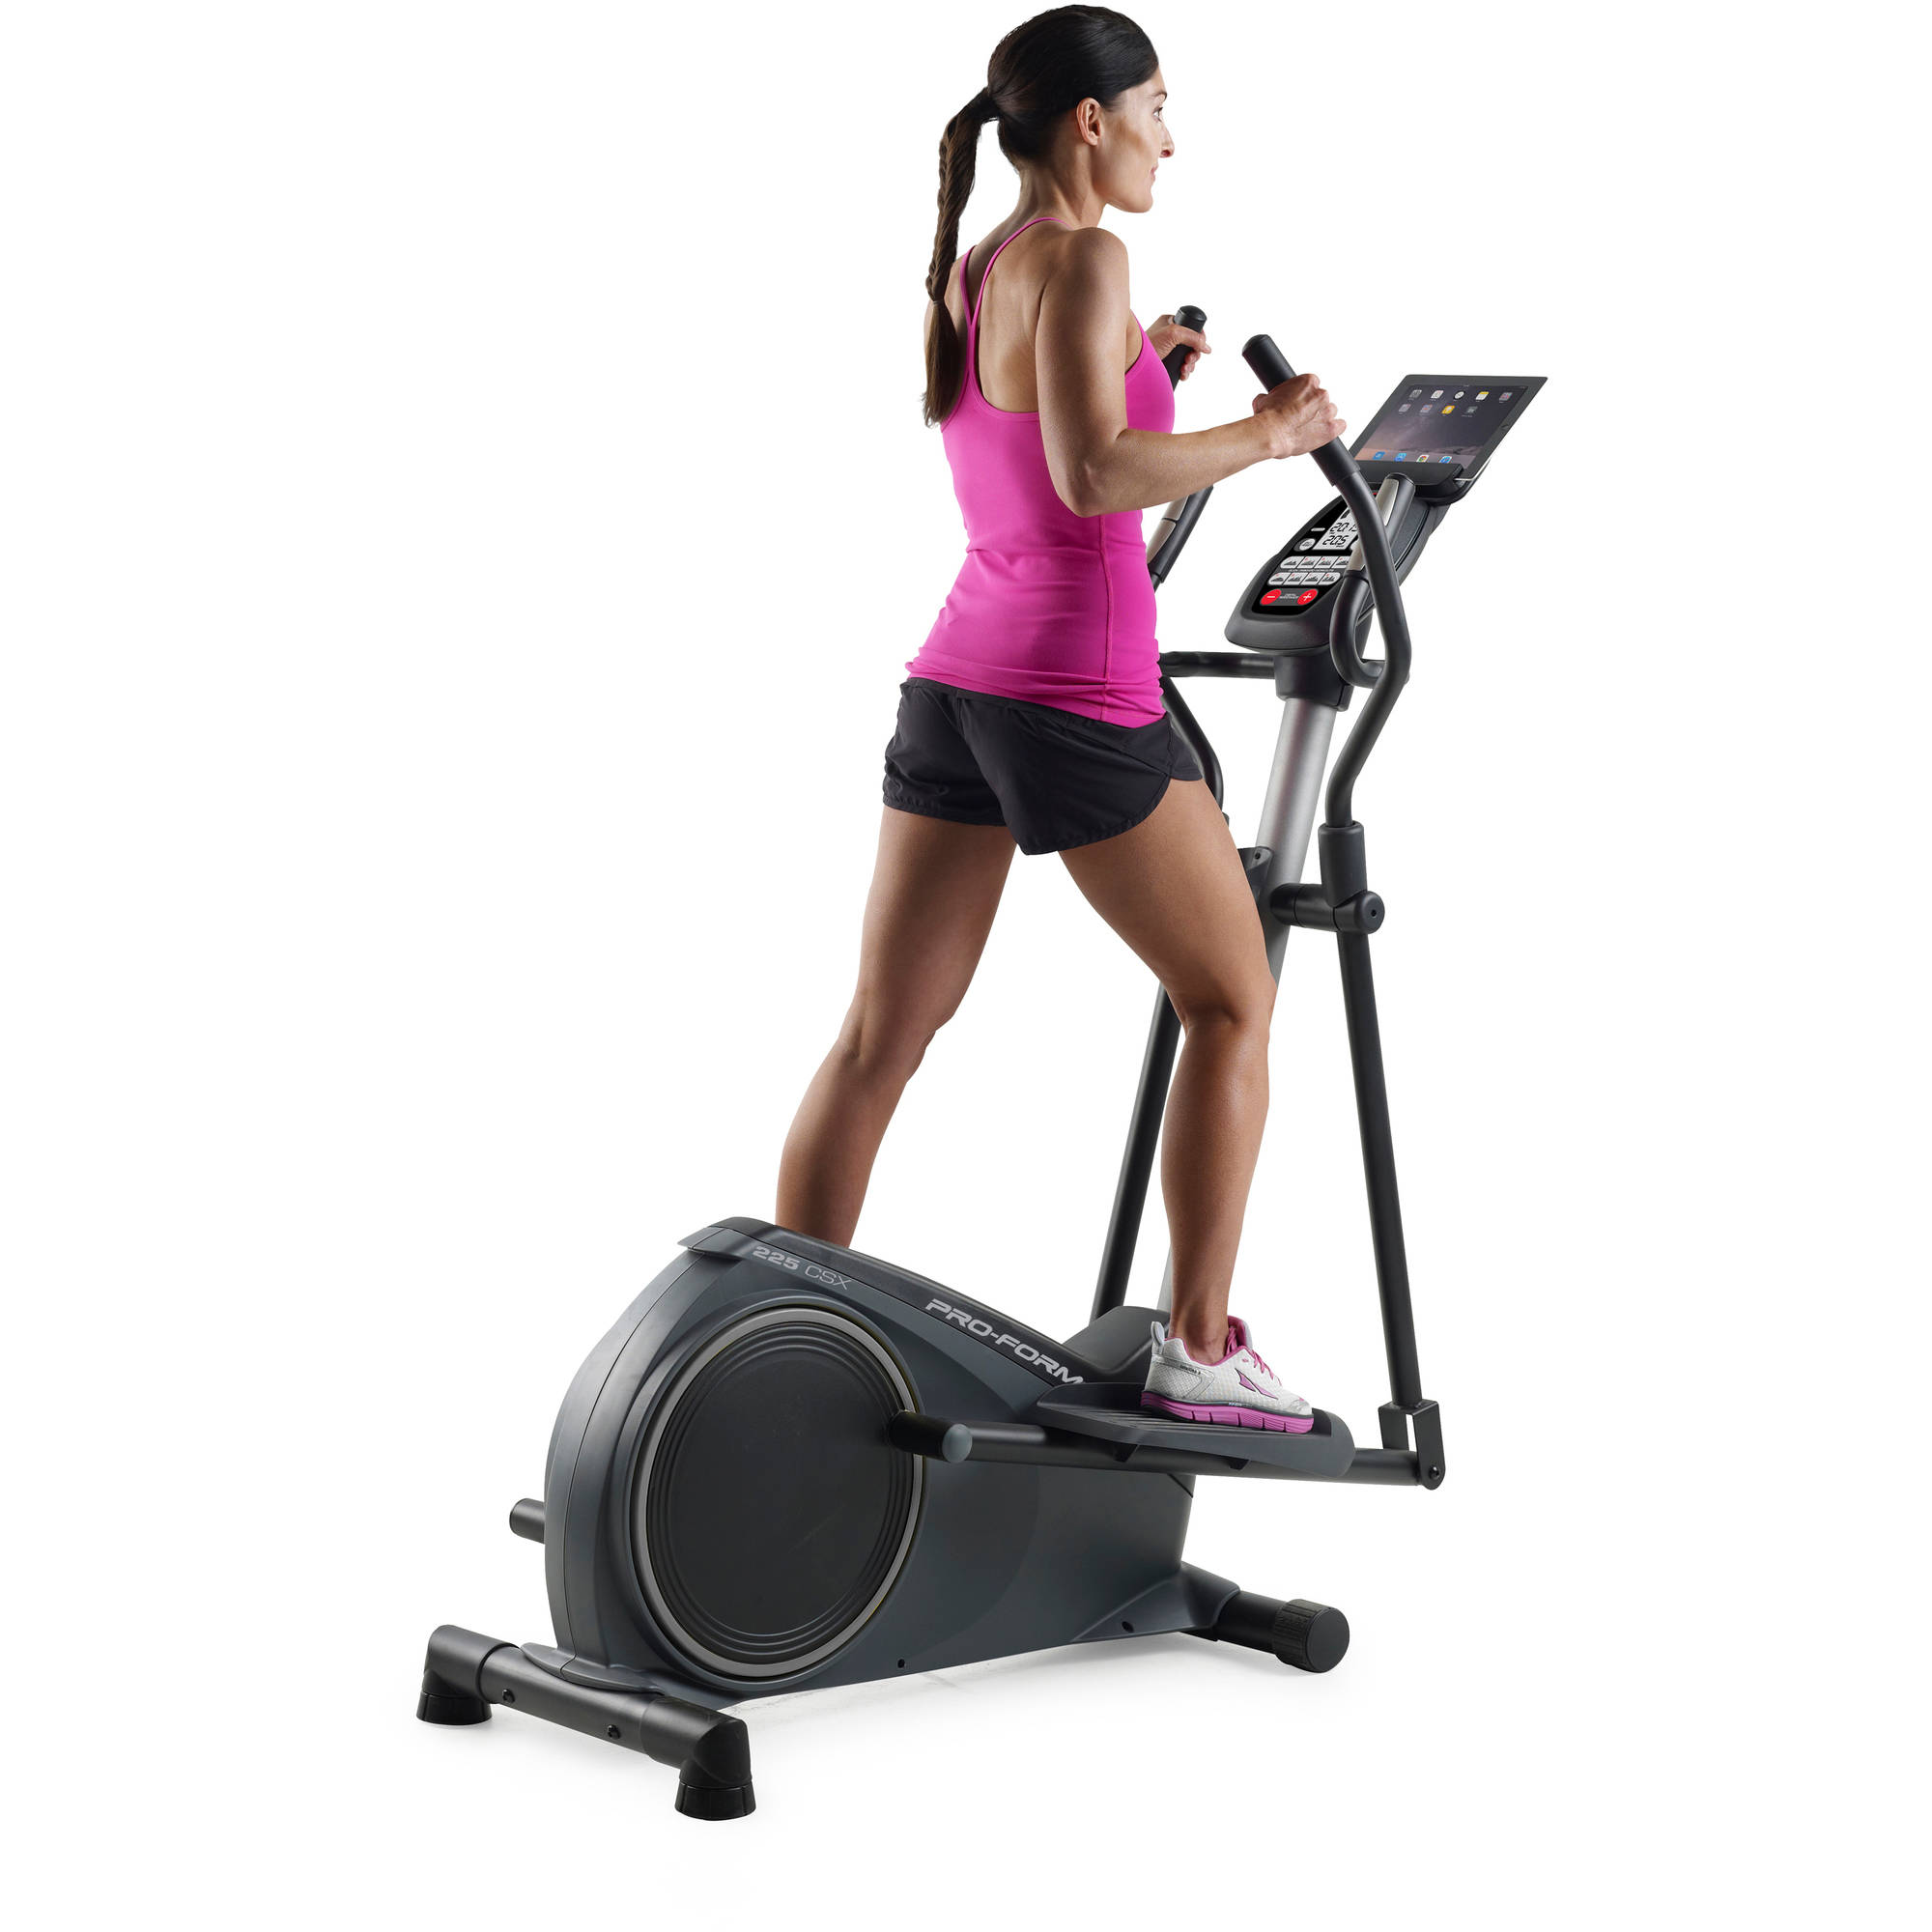 ProForm 225 CSE Compact Portable Elliptical with Tablet Holder